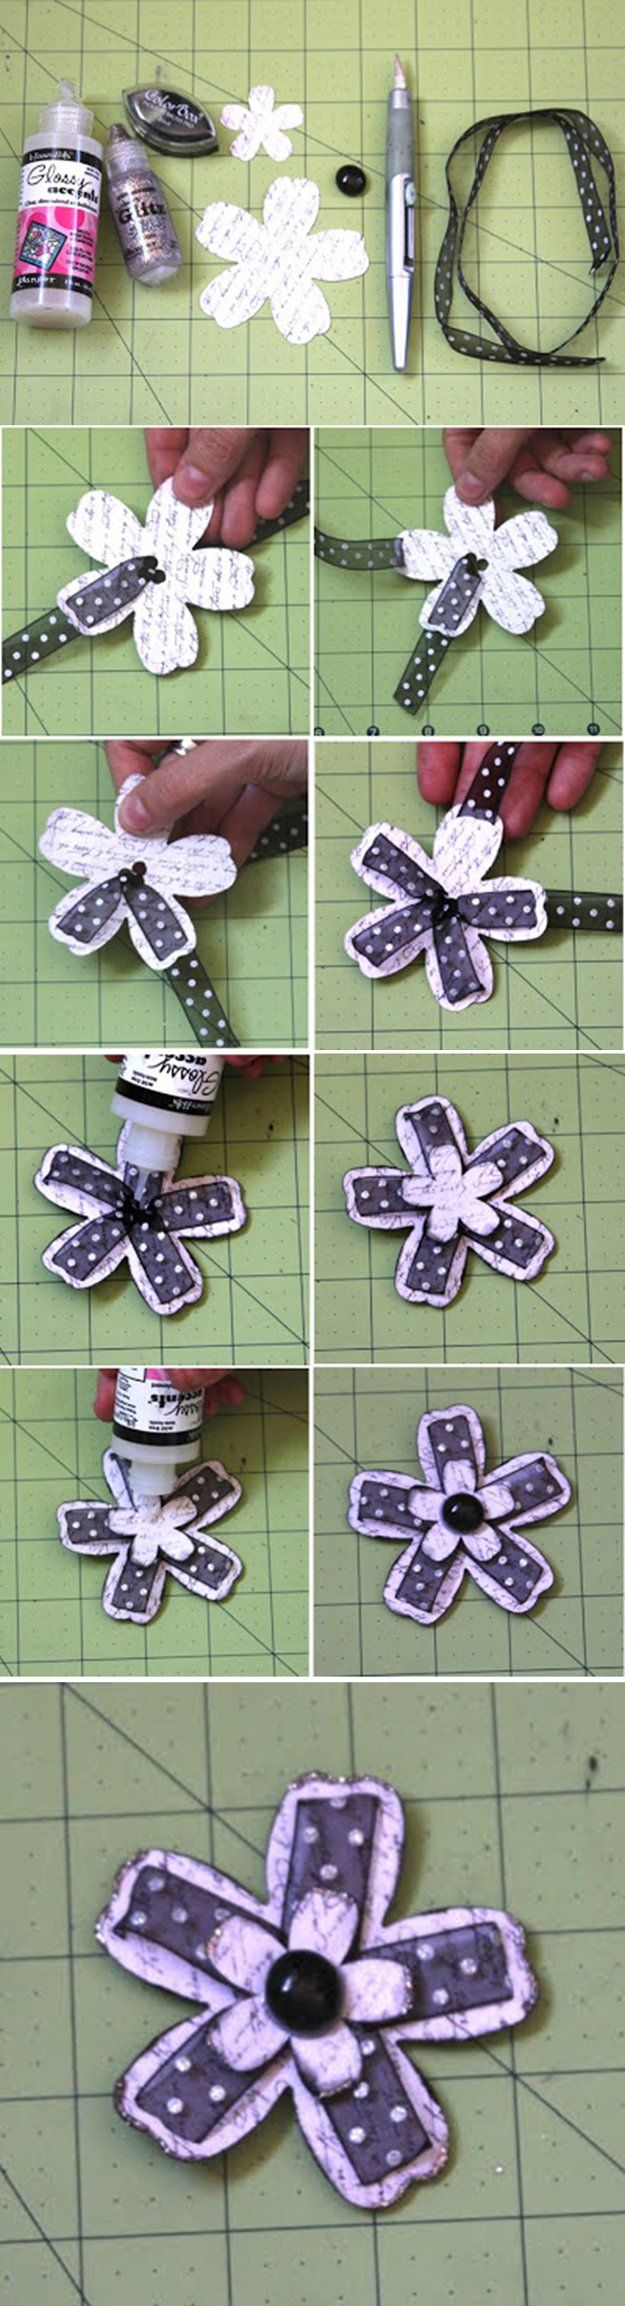 Scrapbook ideas with ribbon - 33 Creative Scrapbook Ideas Every Crafter Should Know